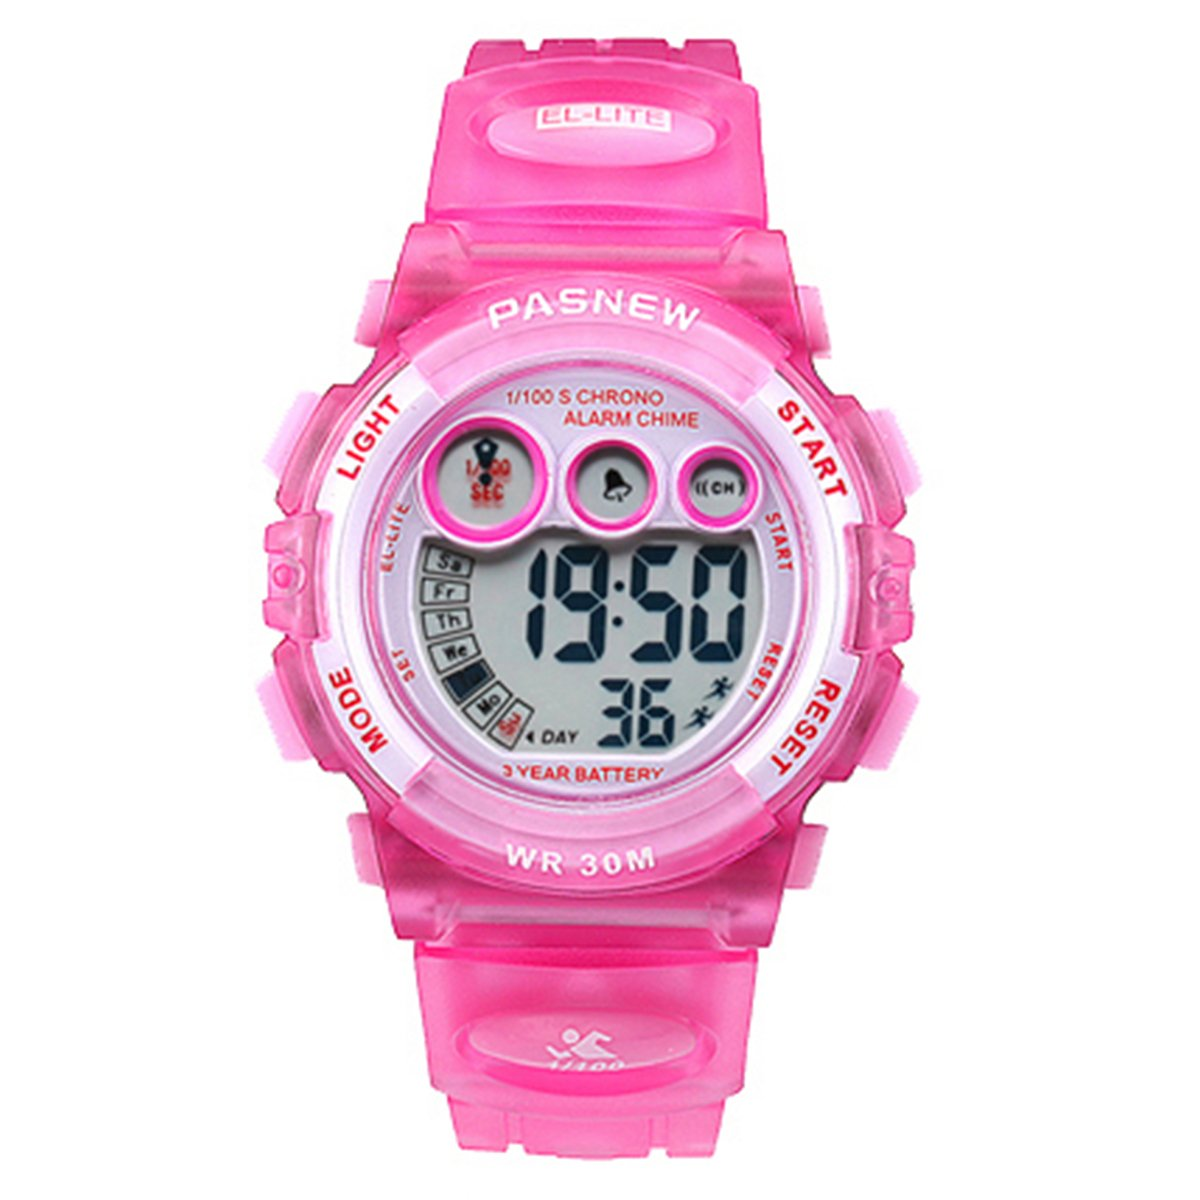 Kids Watches Sports Digital LED 30M Waterproof Alarm Stopwatch Child Wristwatch for Girl Pink